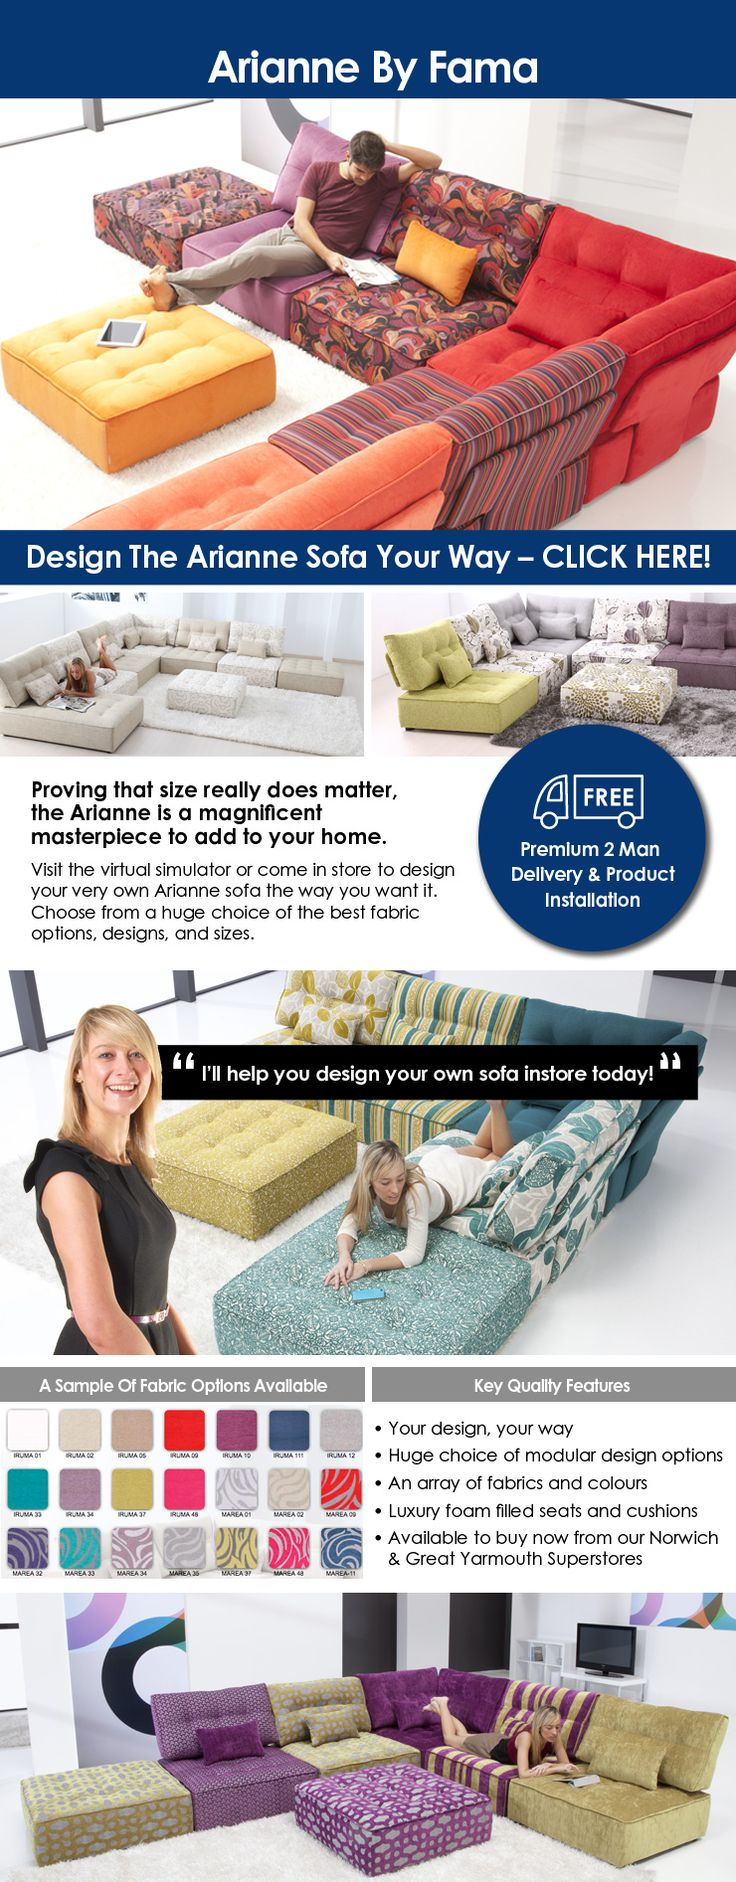 Arianne - Better Furniture Norwich & Furniture Great Yarmouth. www.betterfurniture.co.uk